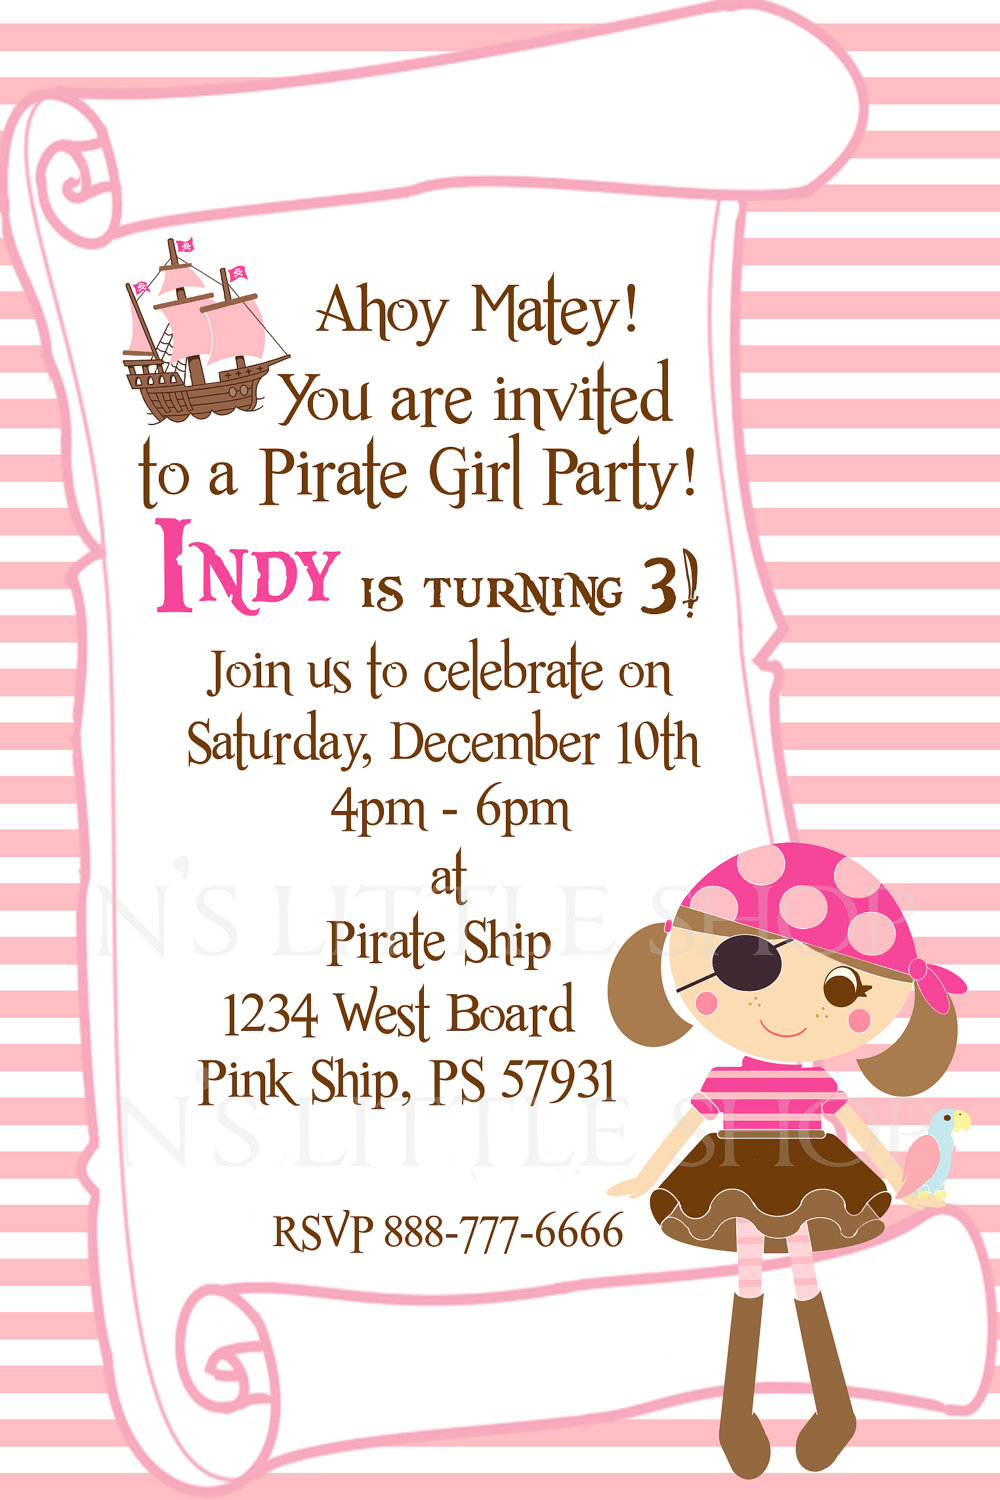 Pirate Girl Birthday Party Theme Invitation